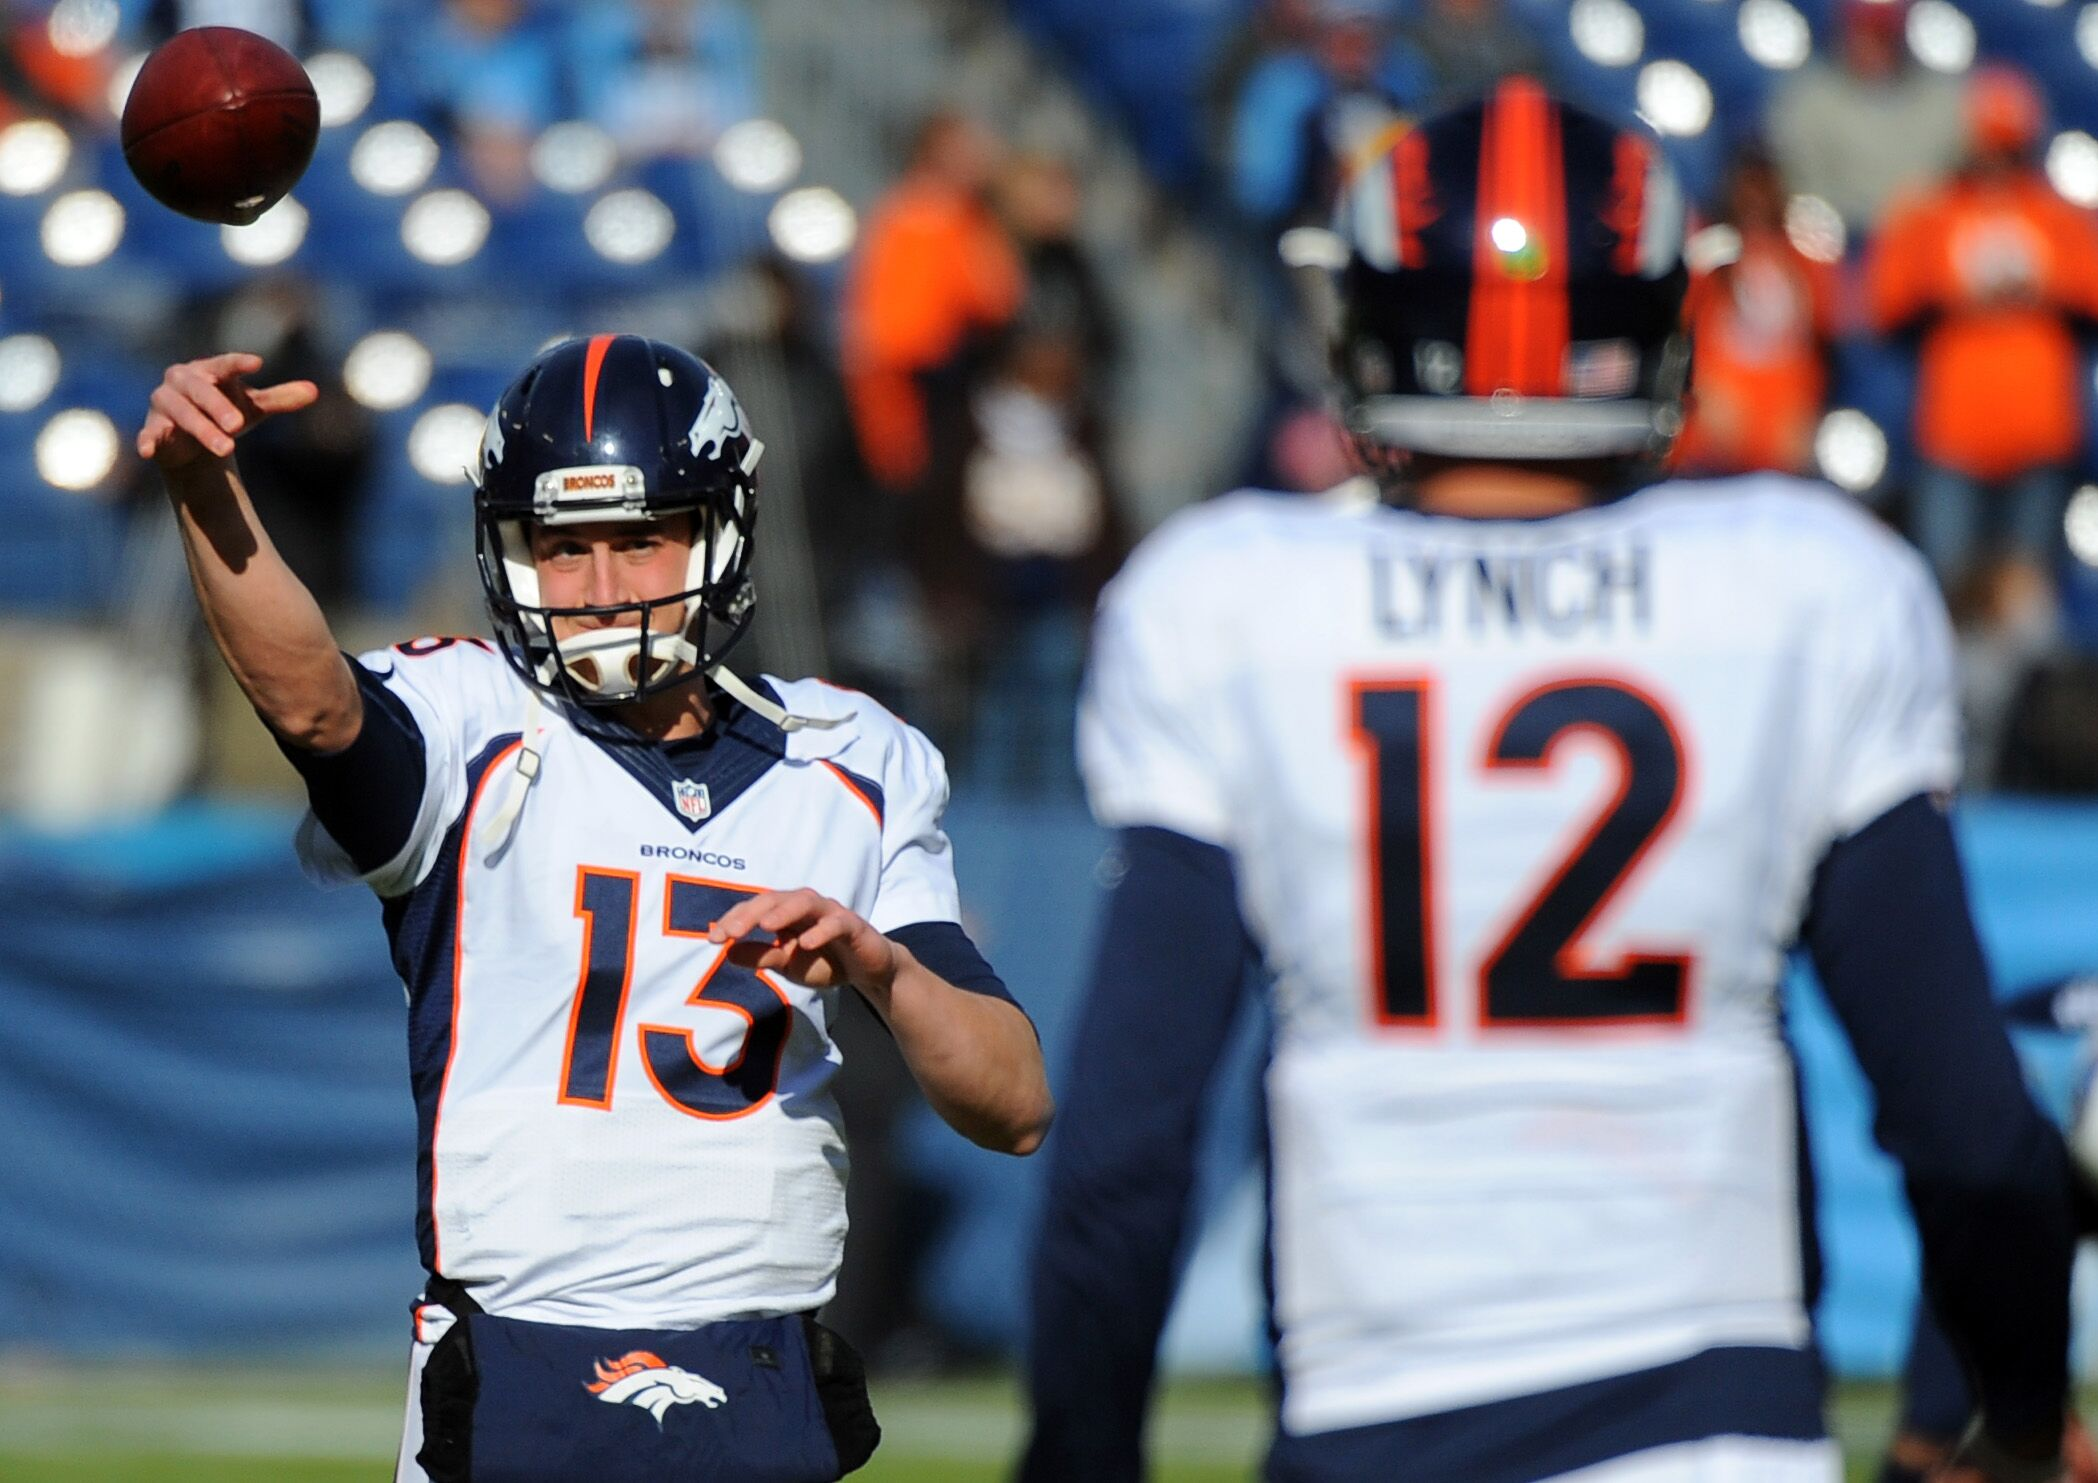 Trevor Siemian Vs Paxton Lynch Breaking Down The Qb Competition